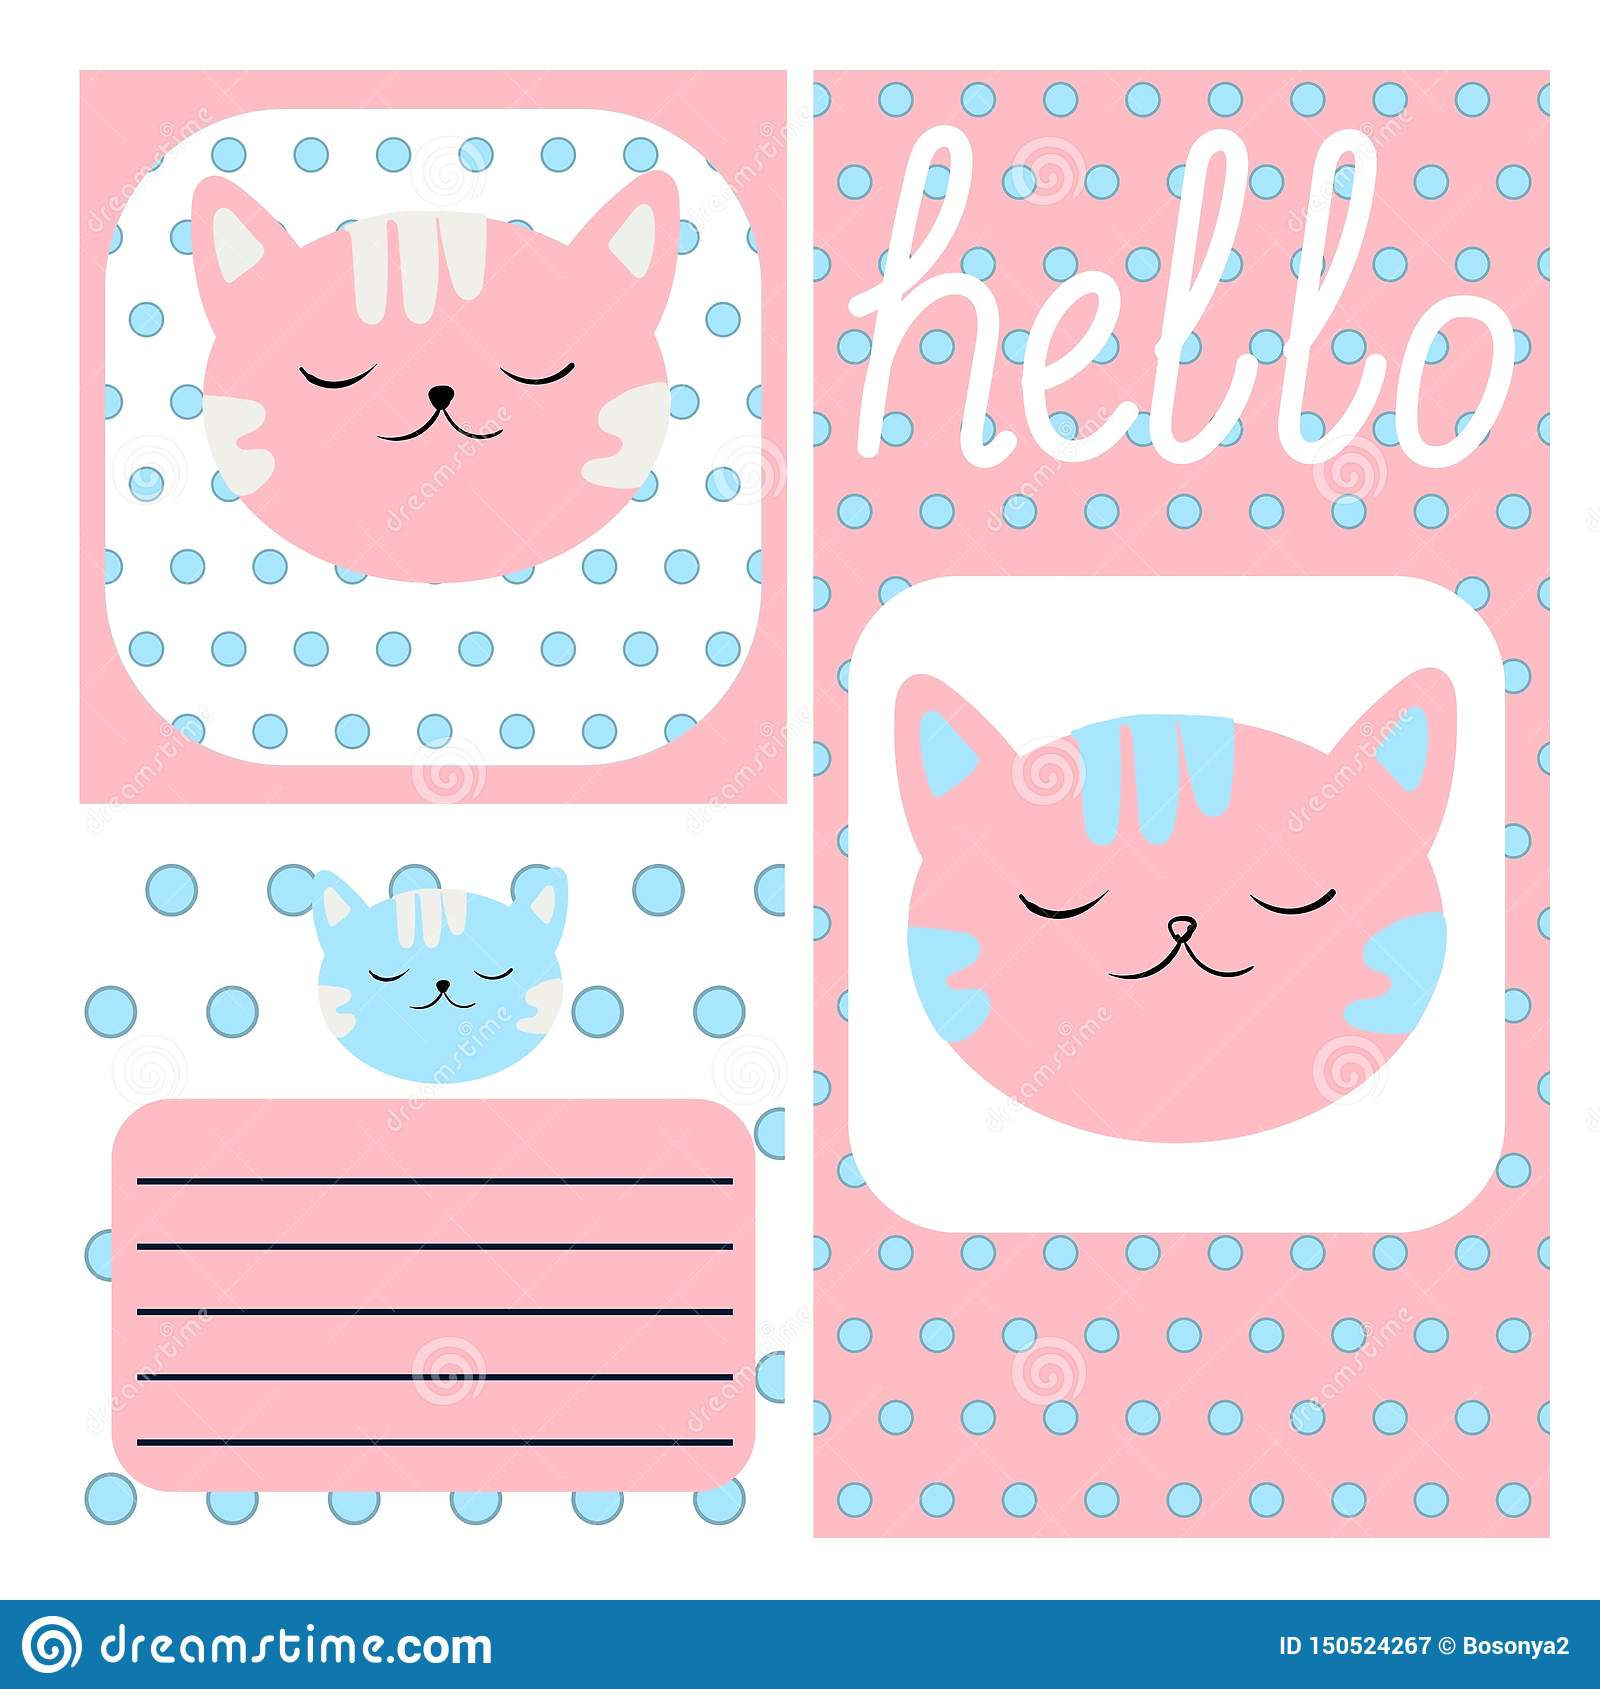 Hand Drawn Doodle Baby Shower Cards, Brochures, Invitations